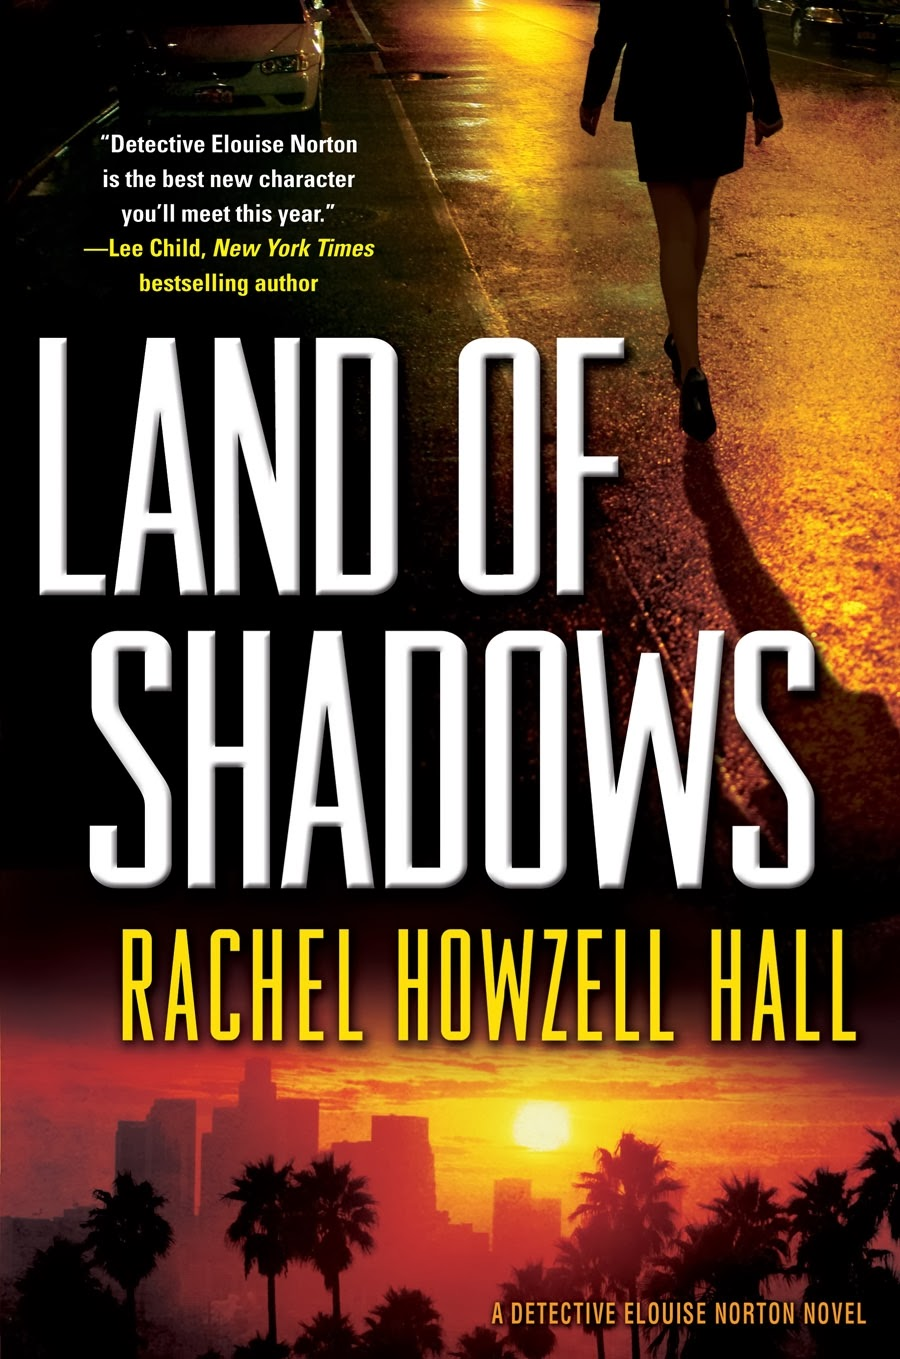 Rachel Howzell Hall: Five Things I Learned Writing Land Of Shadows